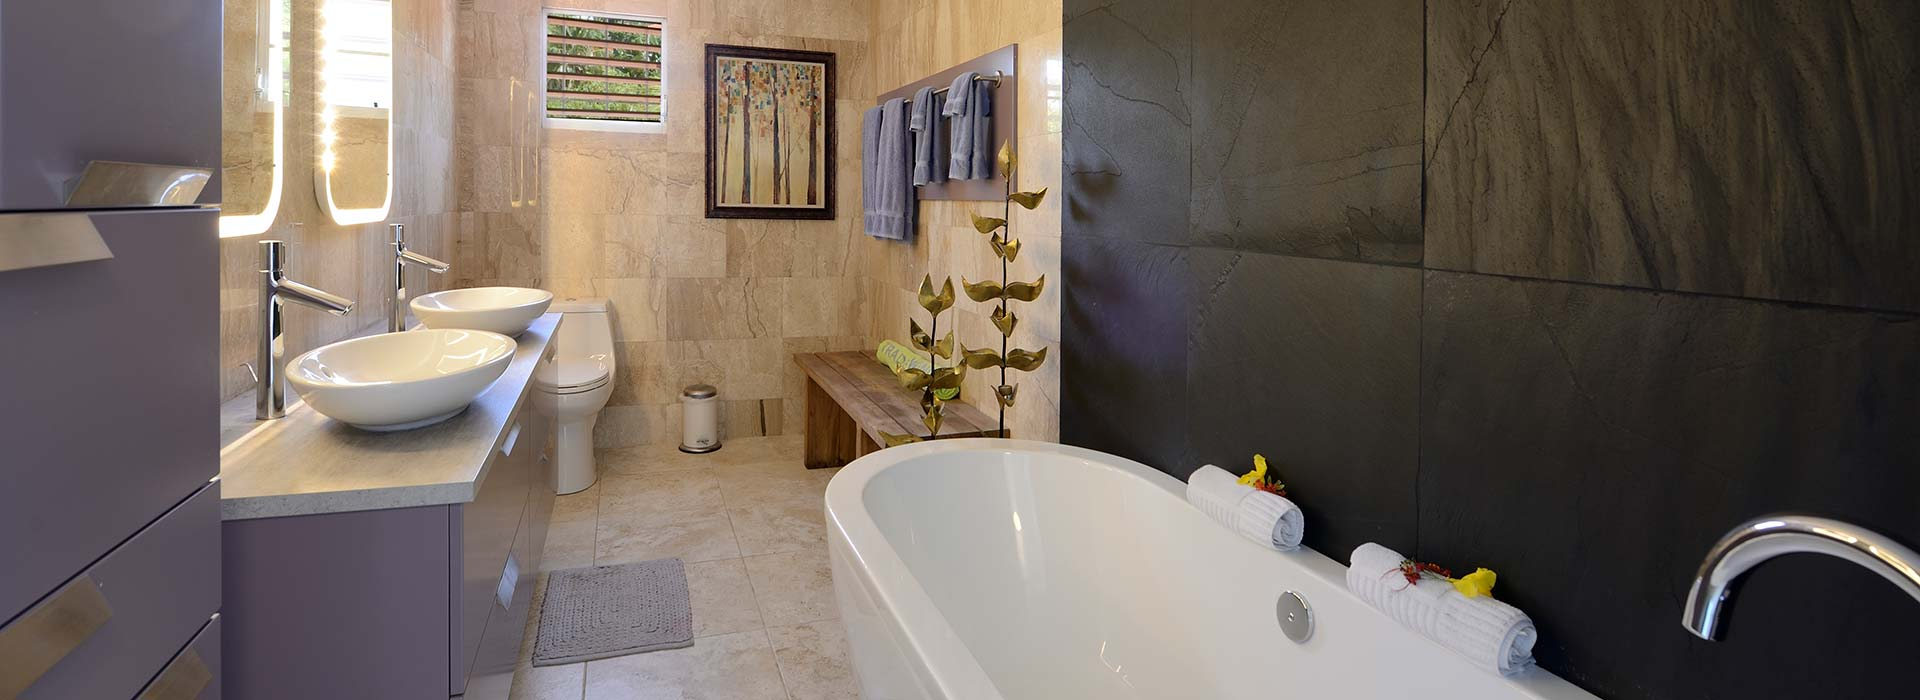 A bathroom in Pelican Villa